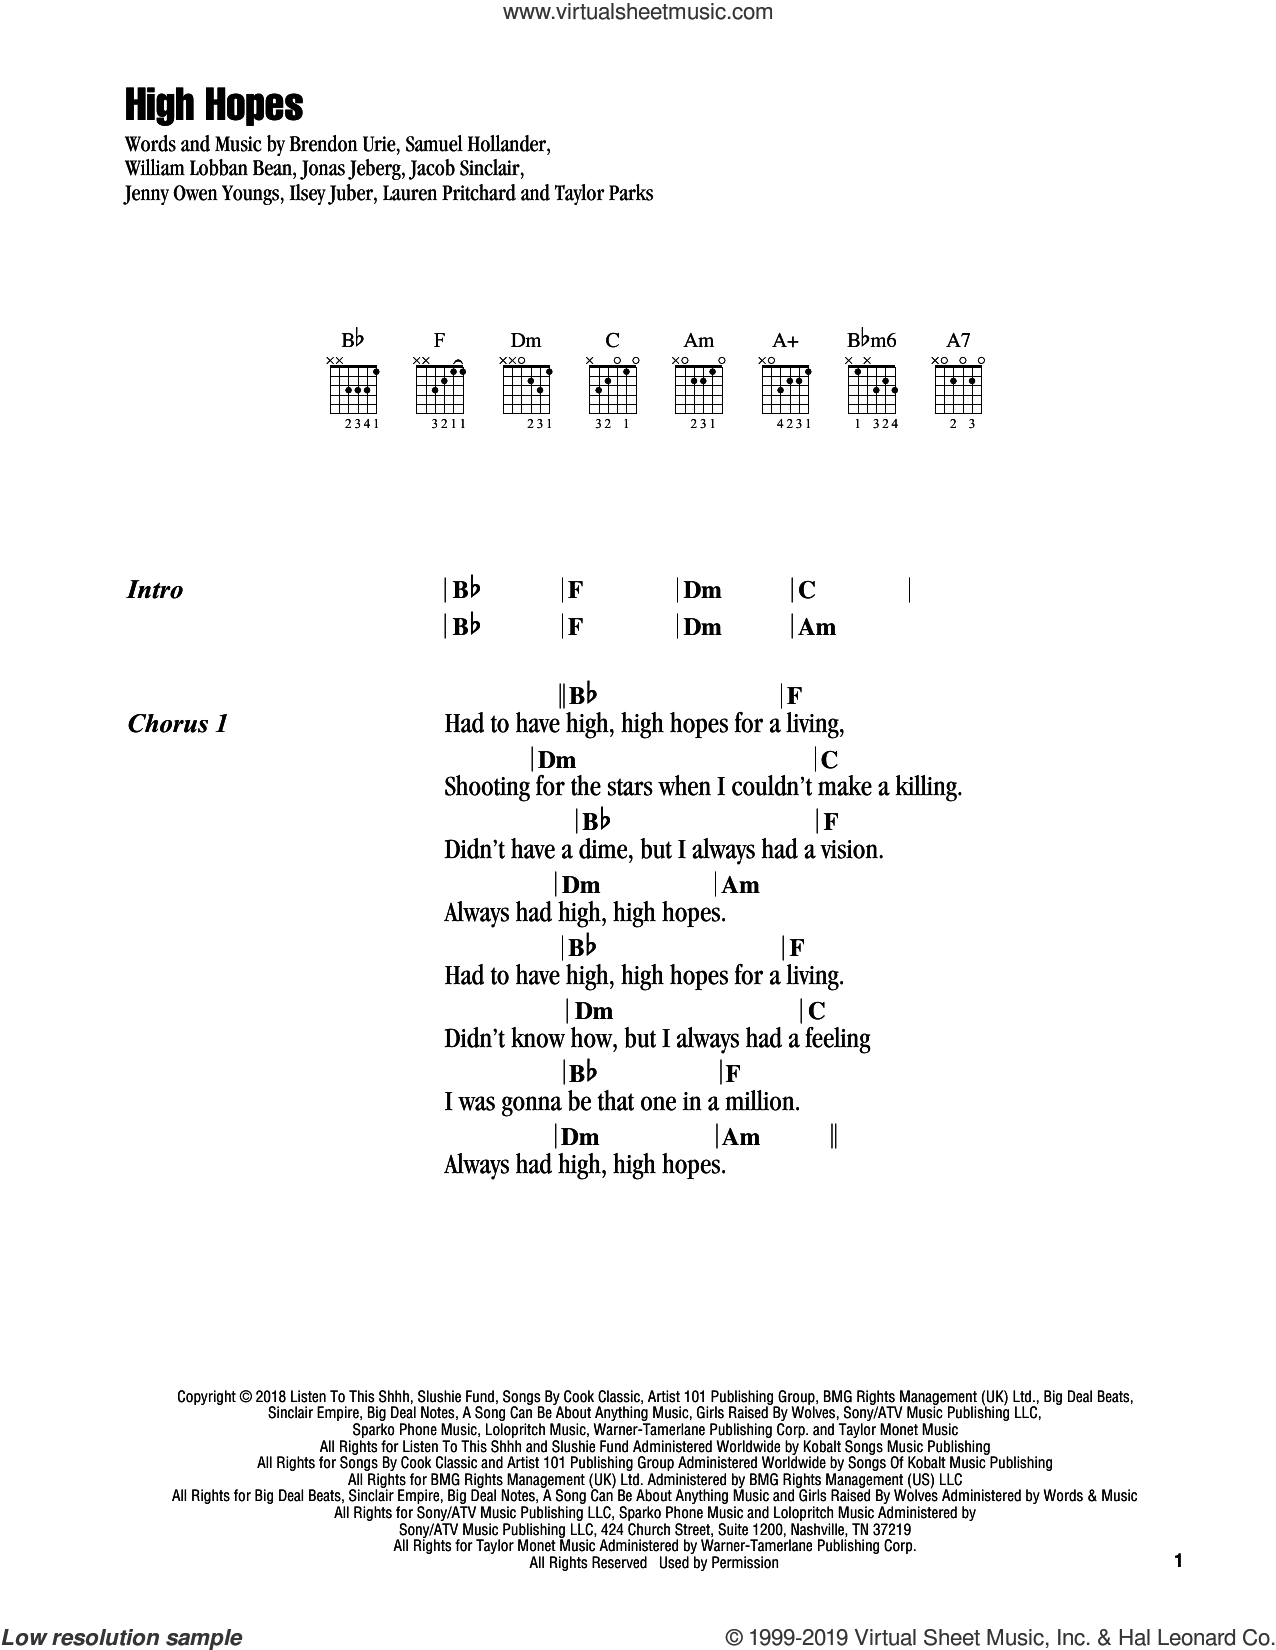 High Hopes sheet music for guitar (chords) by Panic! At The Disco, Brendon Urie, Ilsey Juber, Jacob Sinclair, Jenny Owen Youngs, Jonas Jeberg, Lauren Pritchard, Sam Hollander, Taylor Parks and William Lobban Bean, intermediate skill level